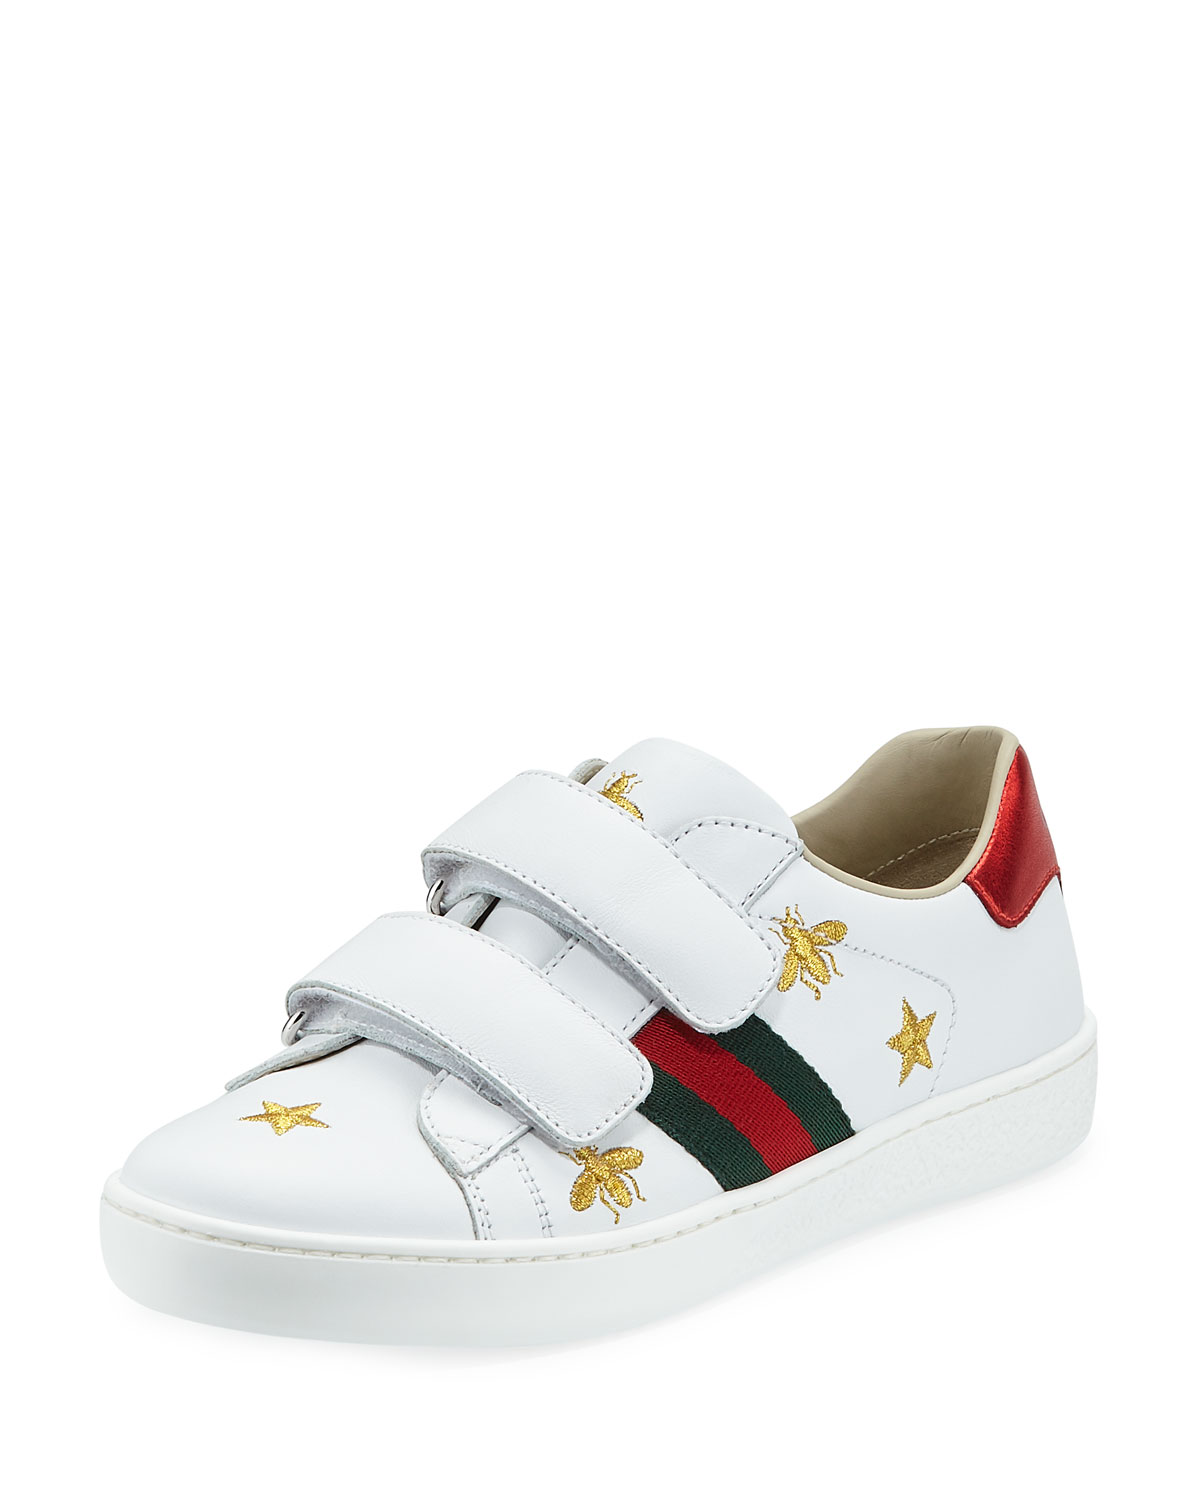 d0634af6c85 Gucci New Ace Bee Embroidery Leather Sneaker